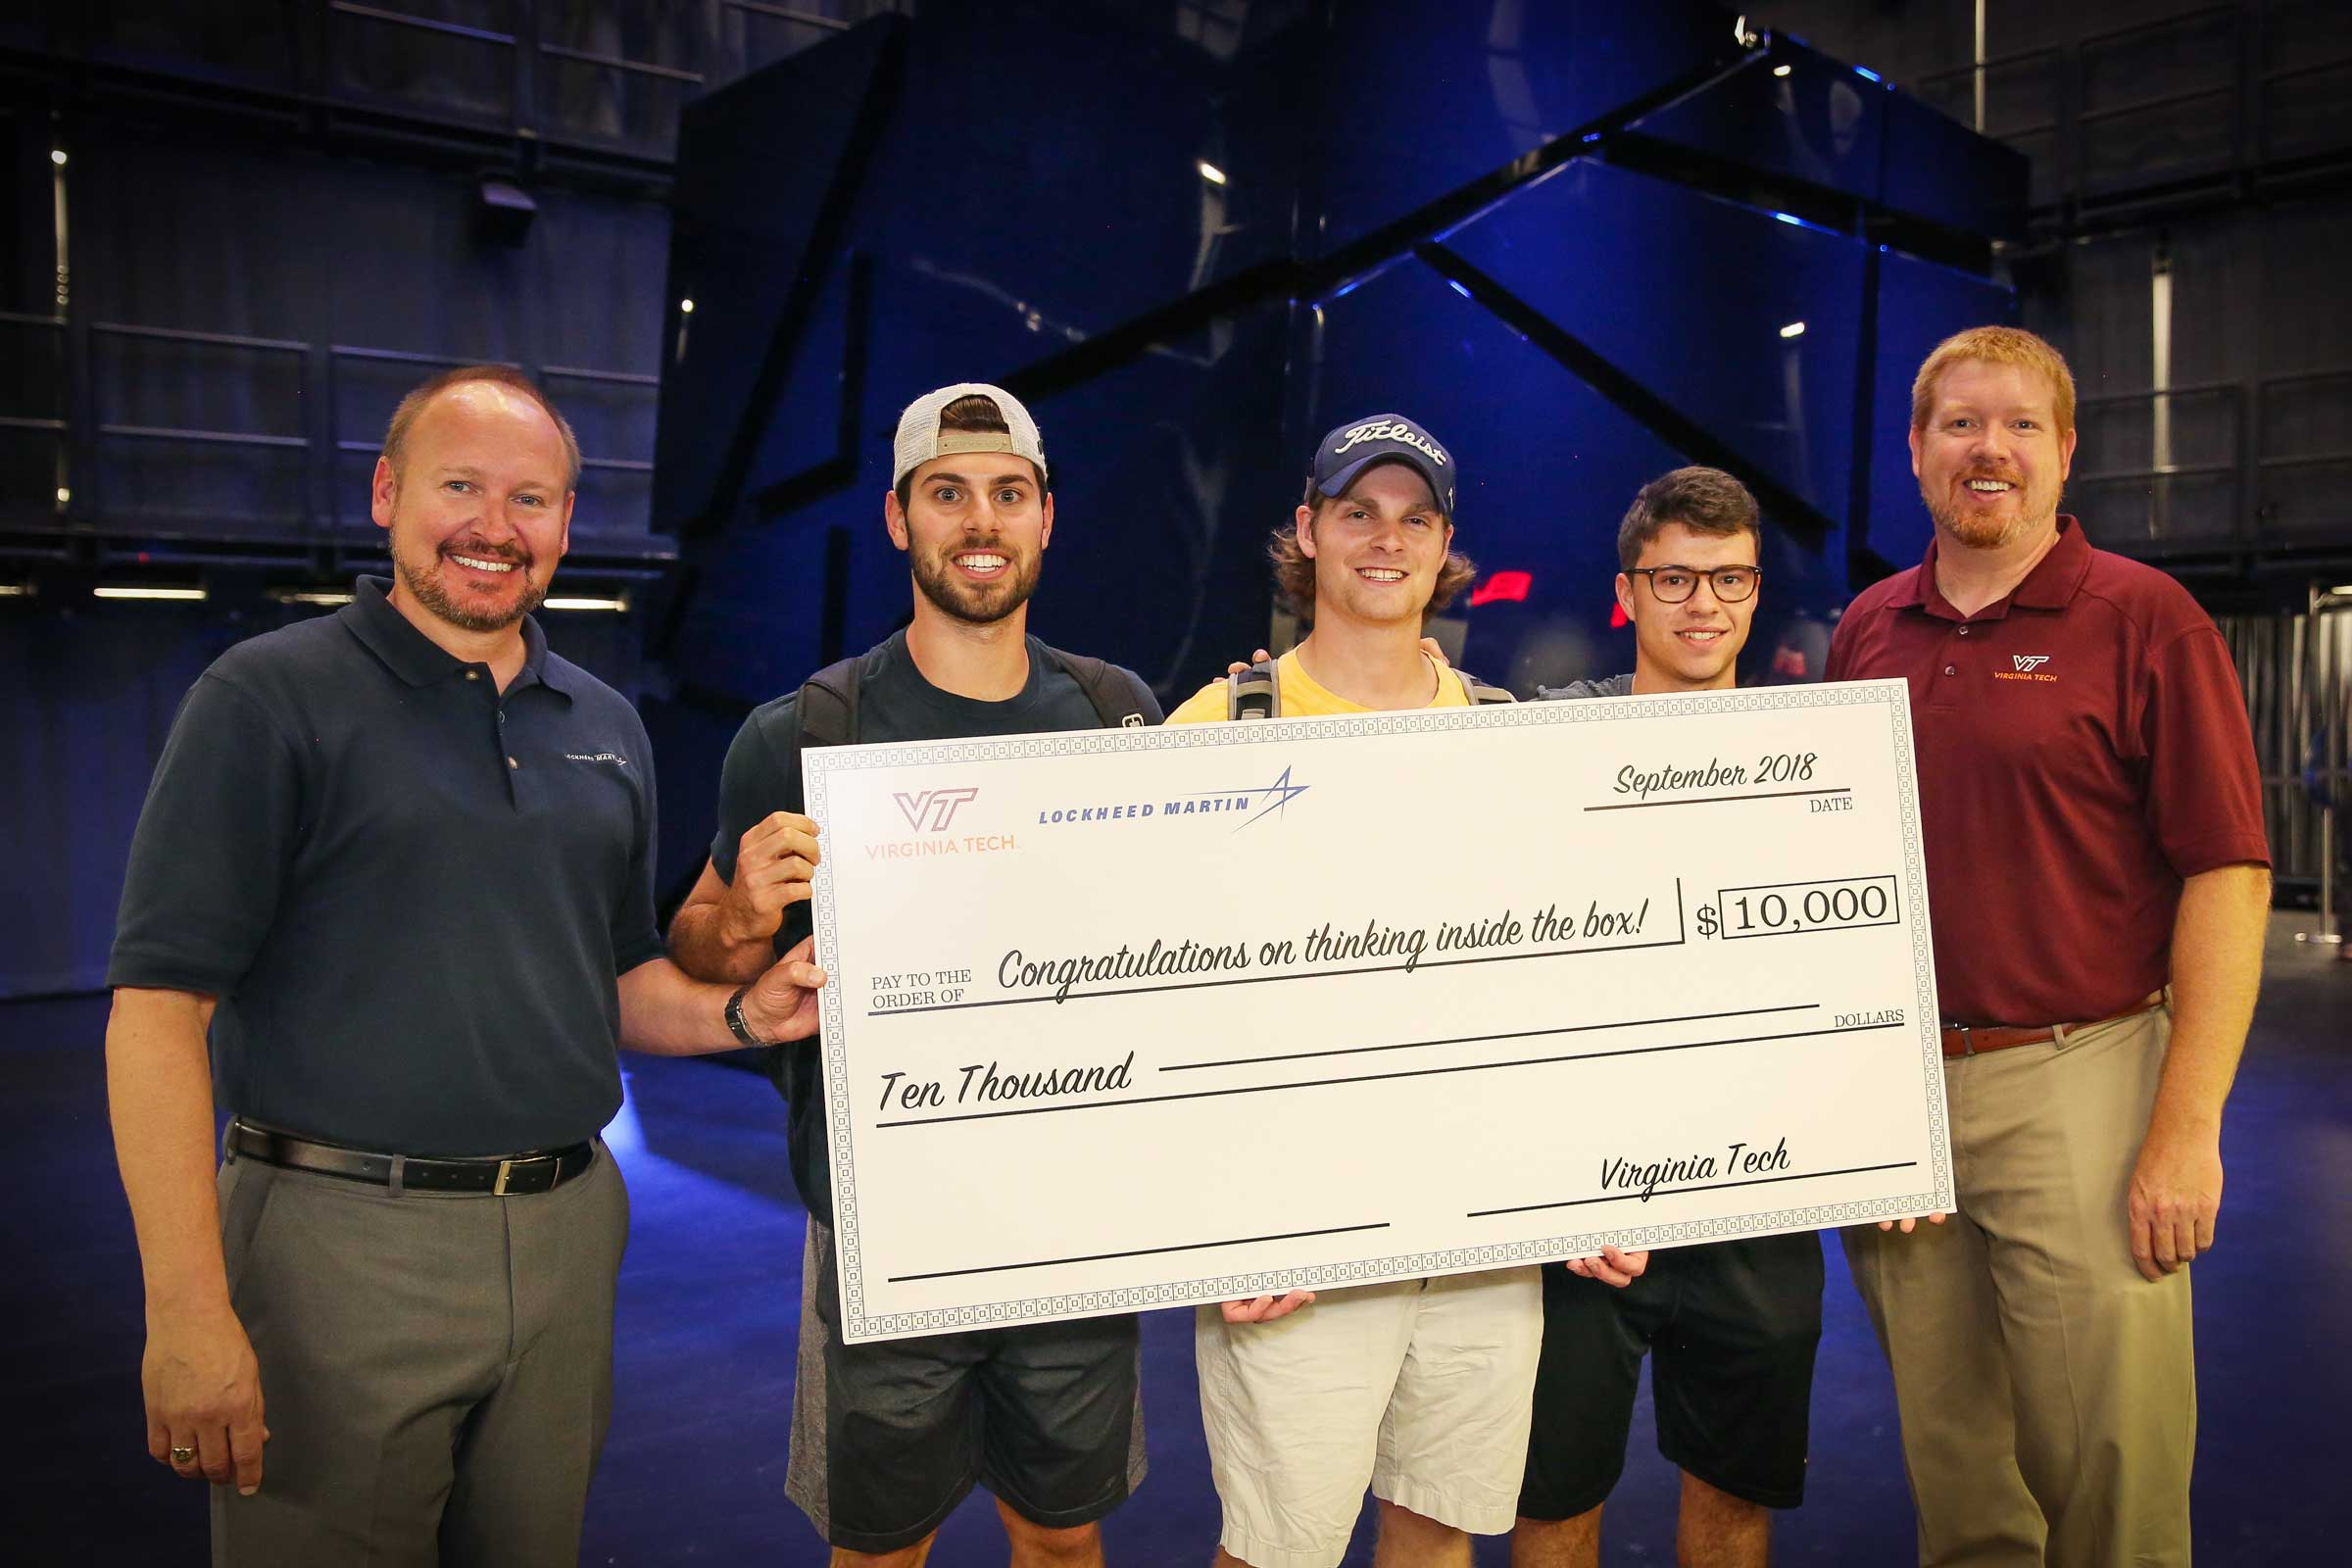 Three male, senior engineering students stand smiling holding a large check that says congratulations on thinking inside the box.